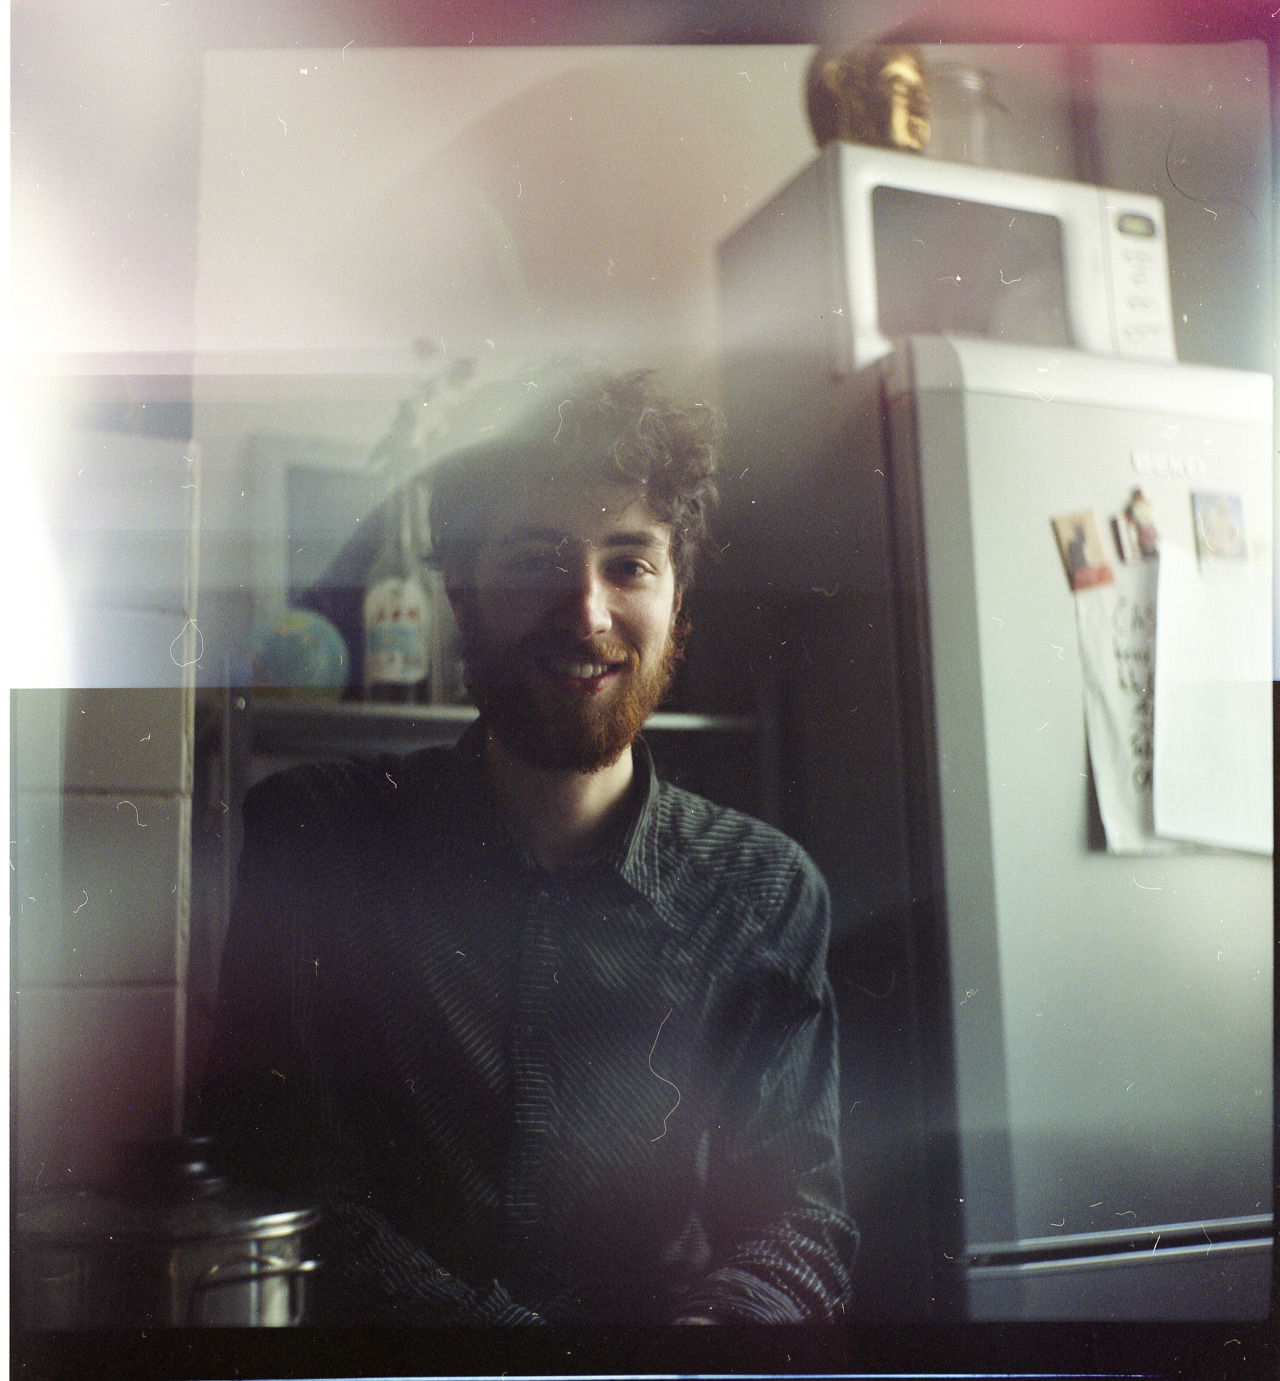 Luke Langille / Light Leak